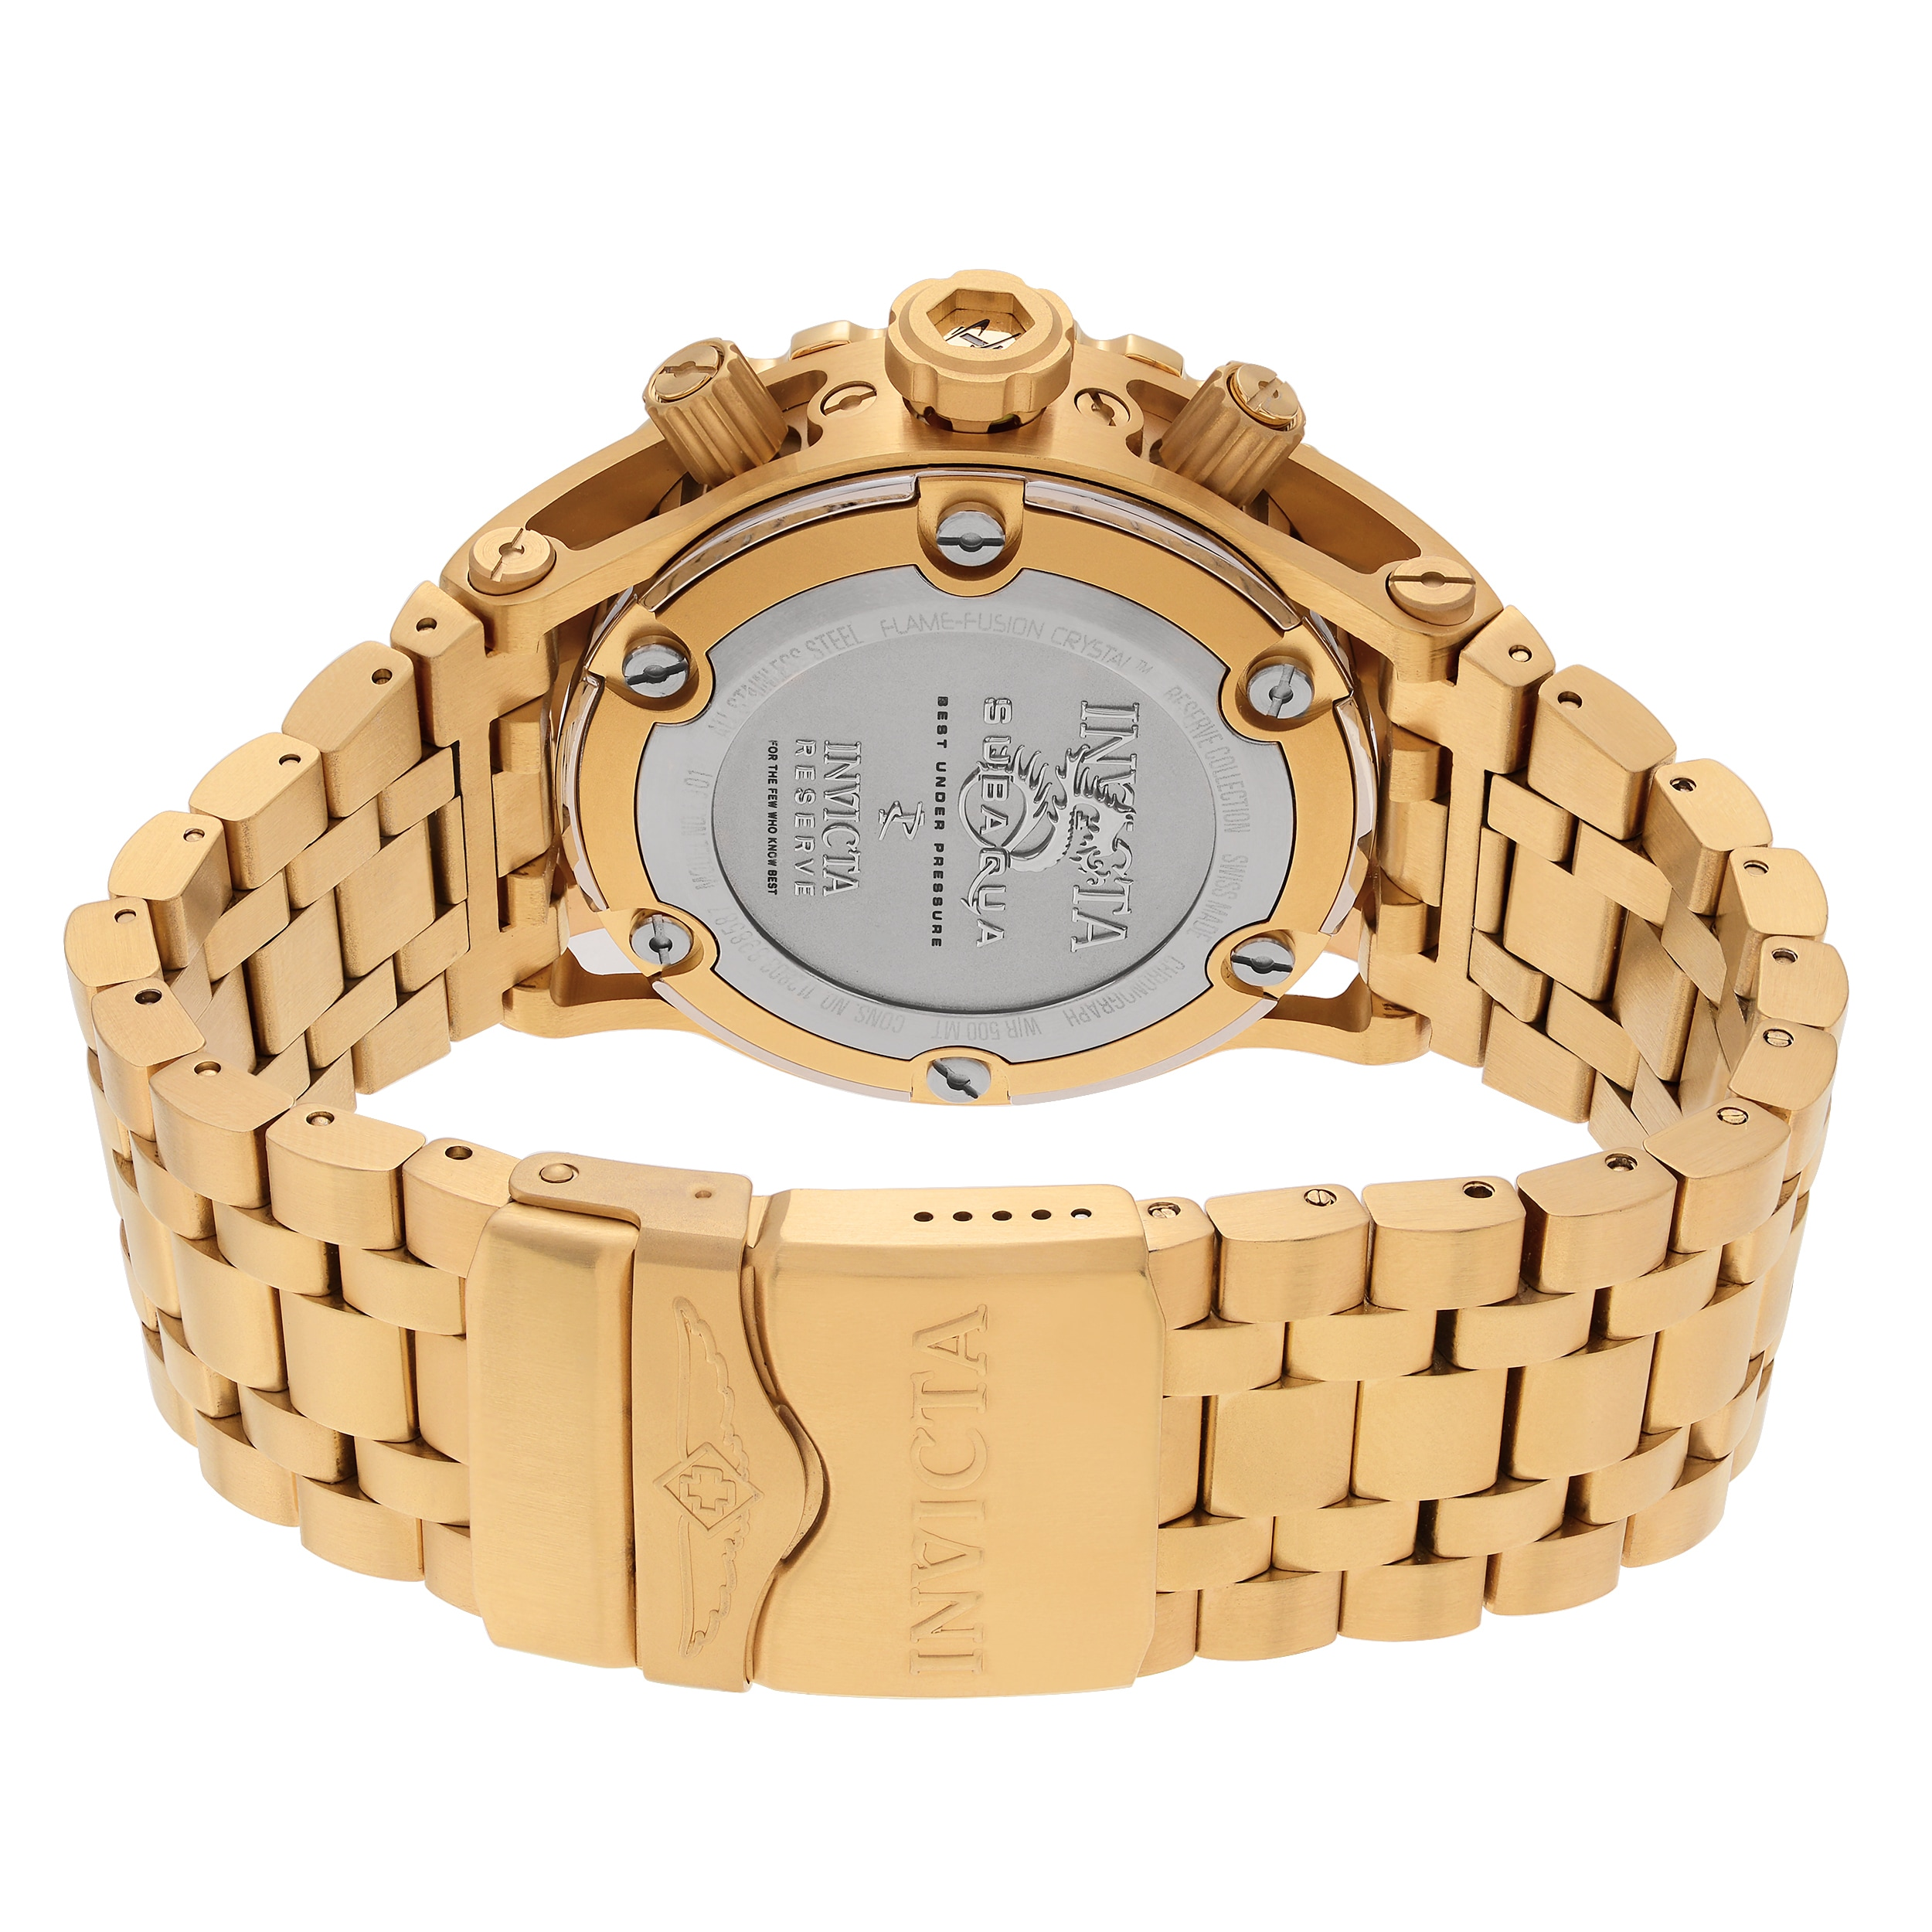 f4f406e370c Shop Invicta Men s 6901  Subaqua  Blemished Goldtone Stainless Steel  Chronograph Dial Link Bracelet Watch - Gold - Free Shipping Today -  Overstock.com - .